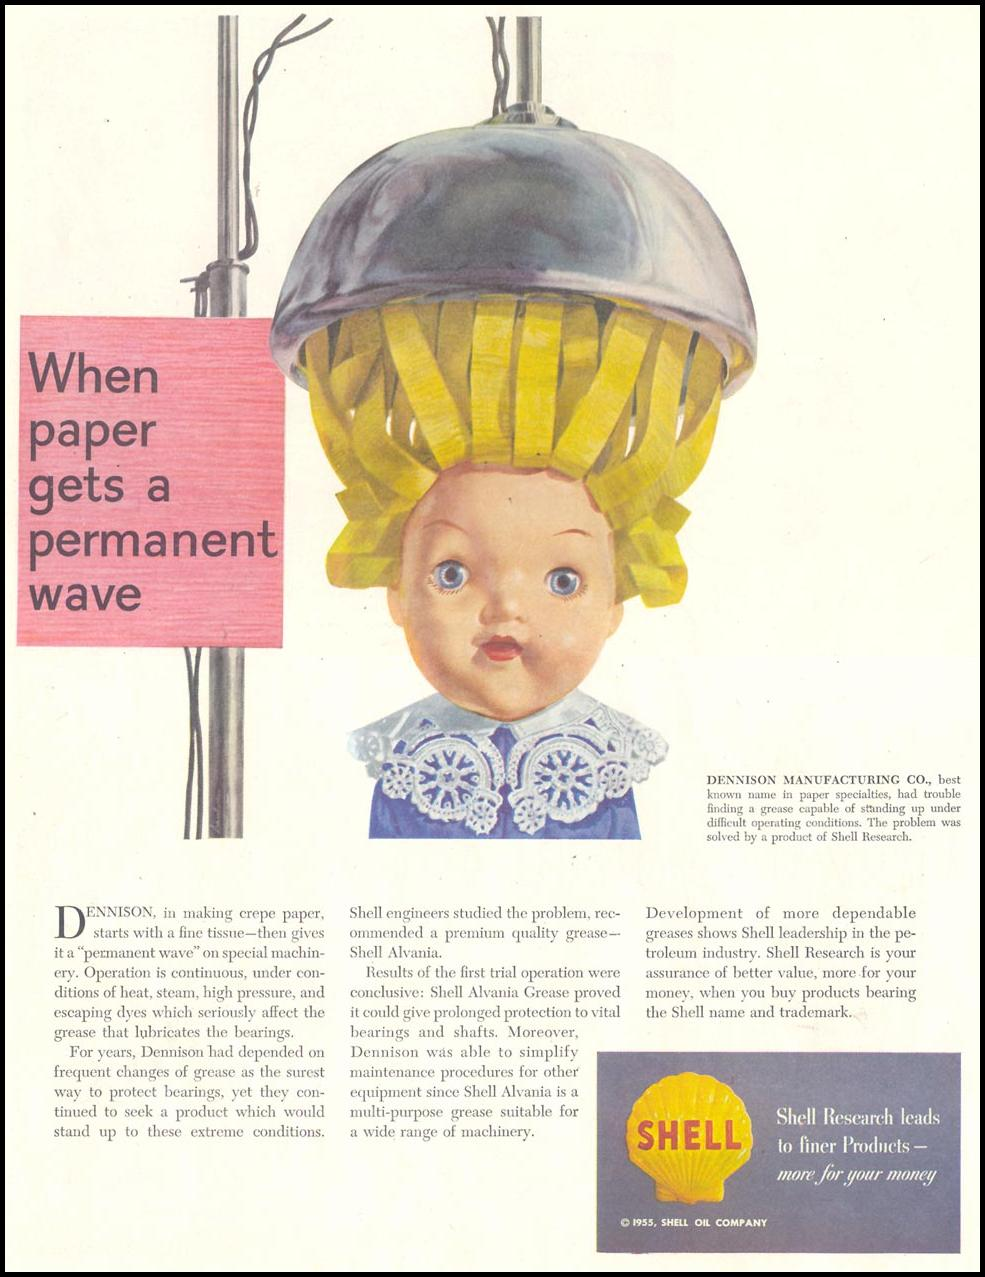 SHELL RESEARCH SATURDAY EVENING POST 02/05/1955 p. 2